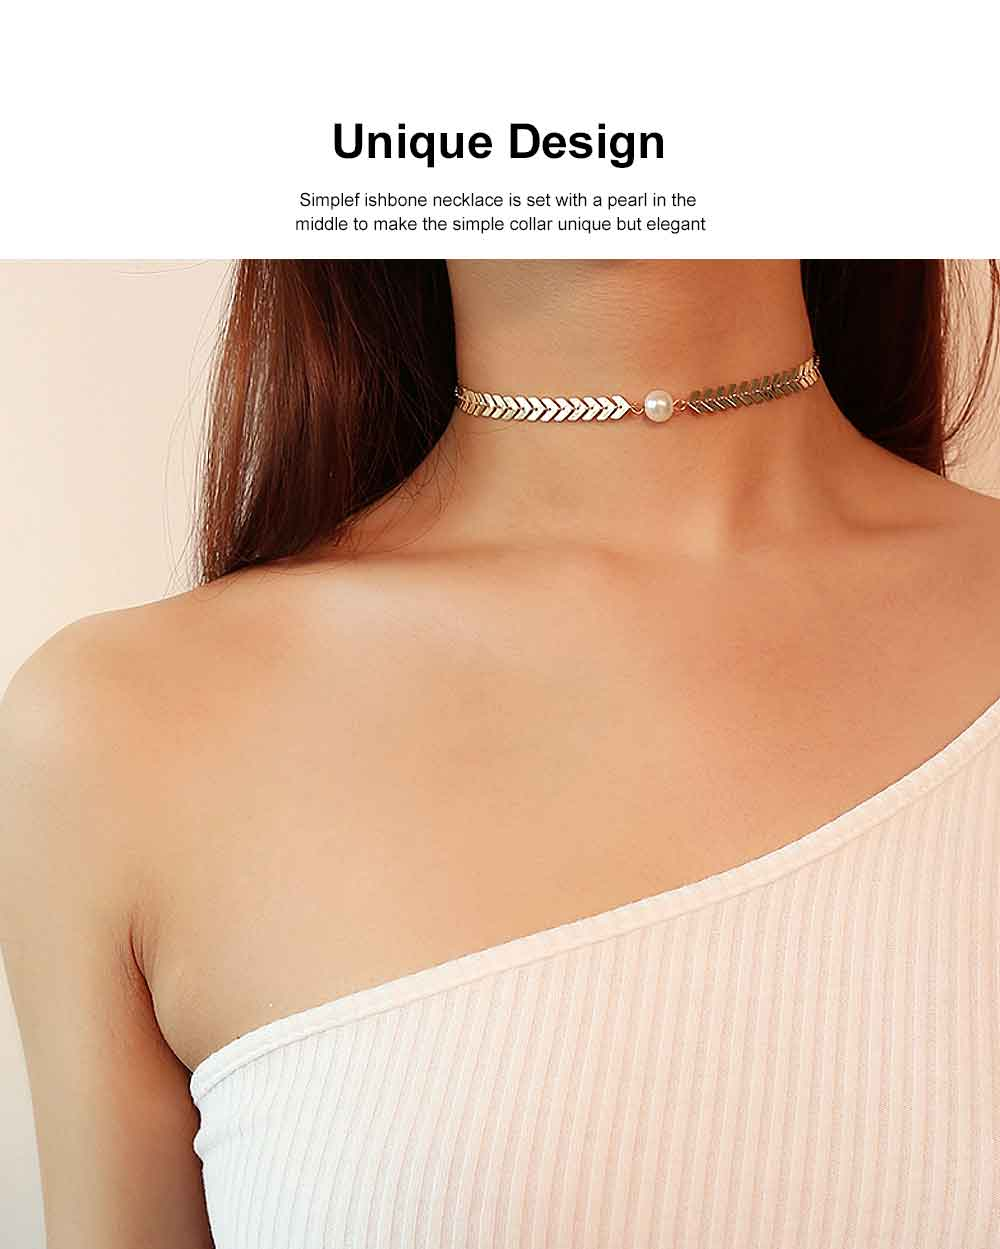 Fishbone Choker Necklace Pearl Pendant Chain Casual Choker Necklace for Women and Girls 1